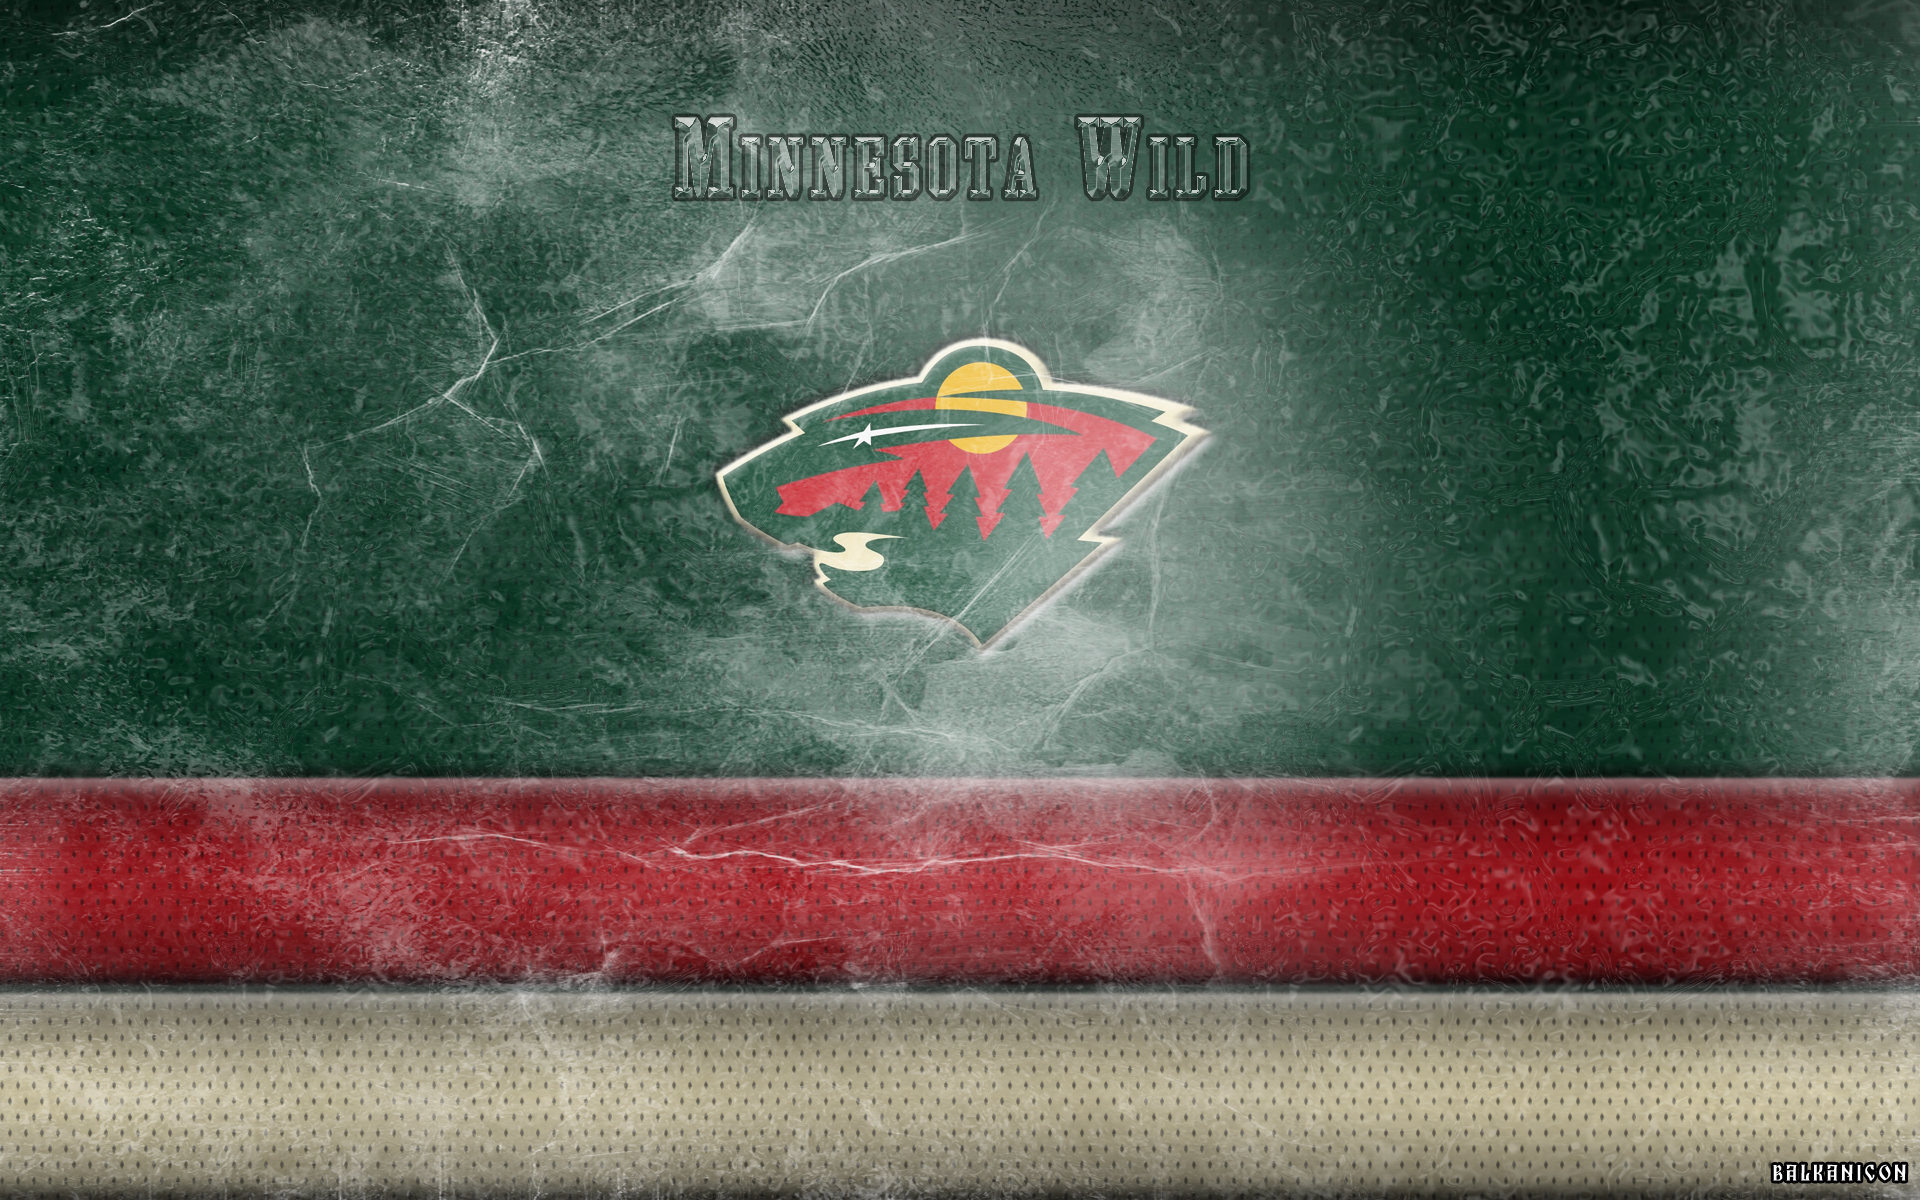 Minnesota Wild wallpaper by Balkanicon 1920x1200